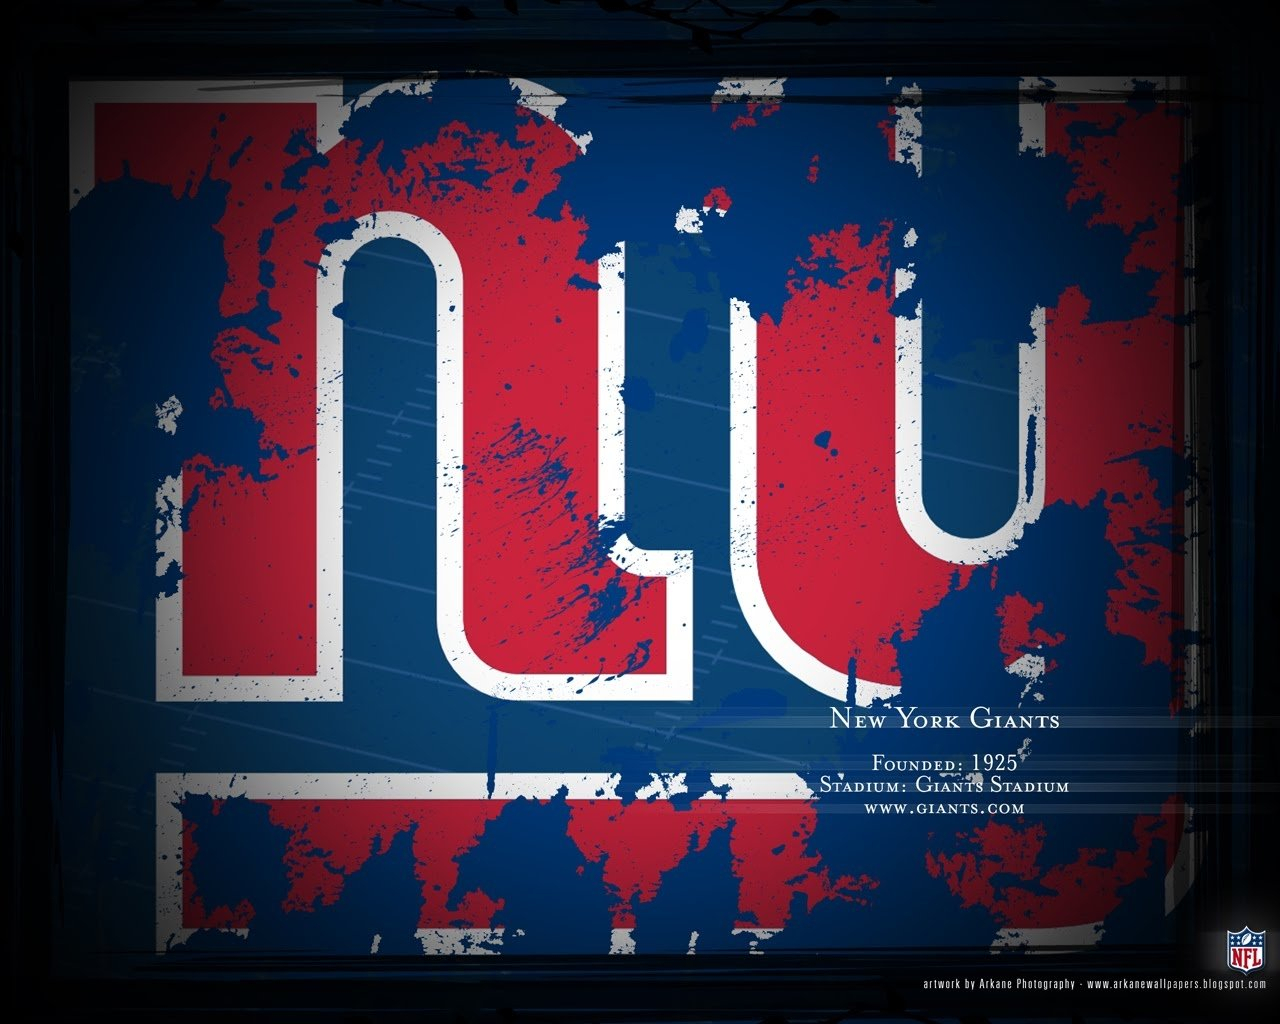 new york giants wallpaper and hintergrund | 1280x1024 | id:149899